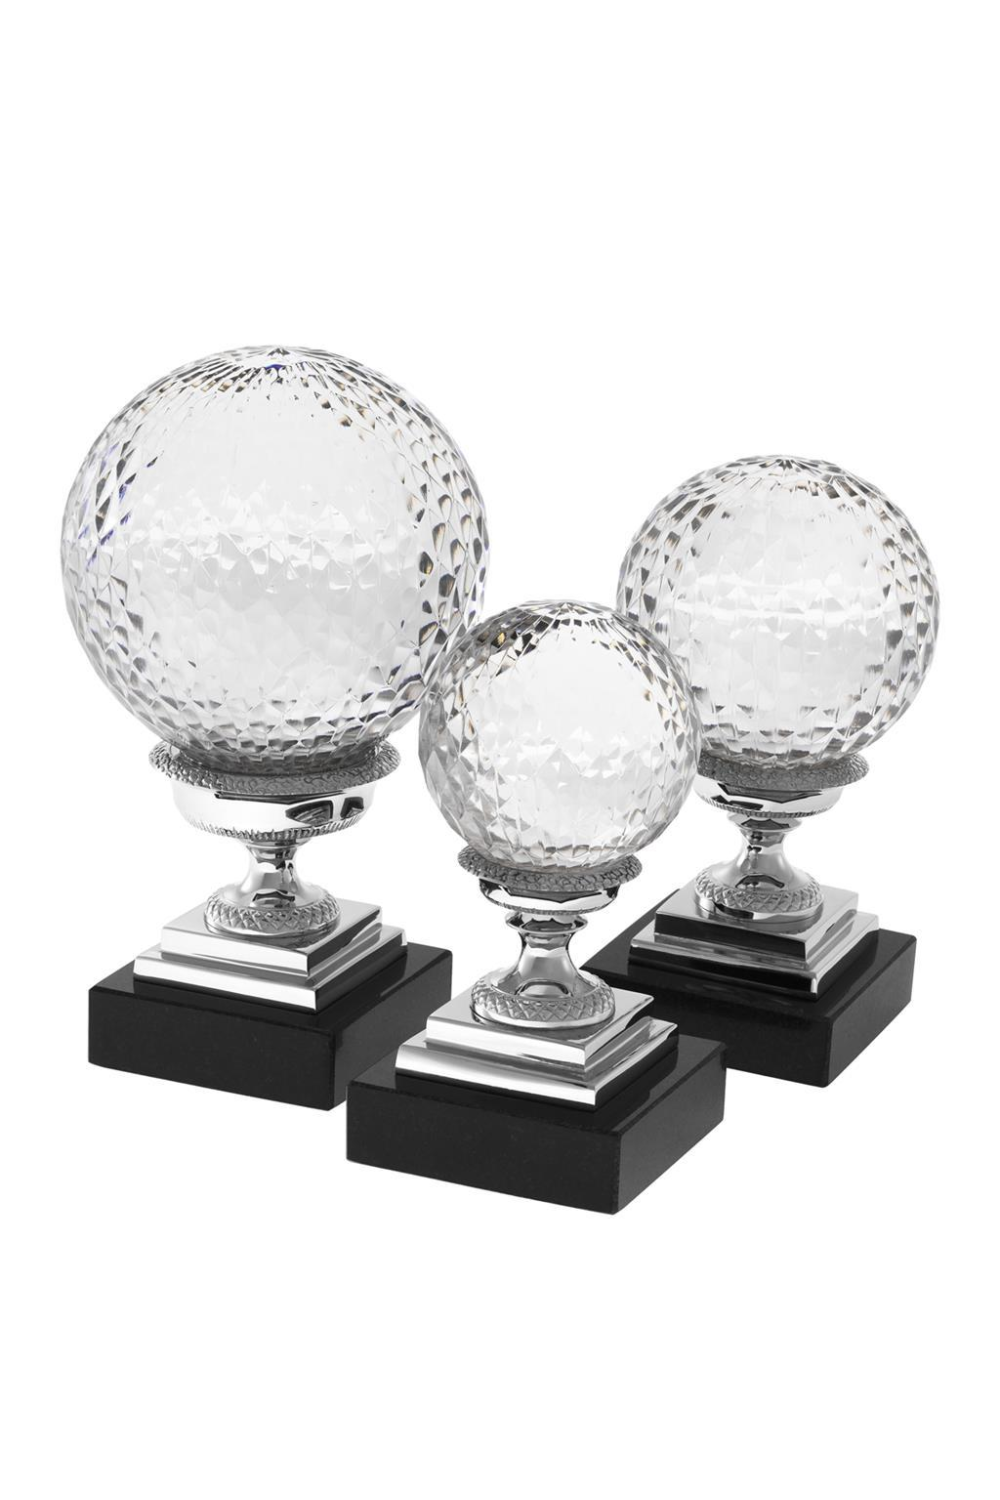 Glass Globe Object Set of 3 | Eichholtz Divani | #1 Eichholtz Retailer